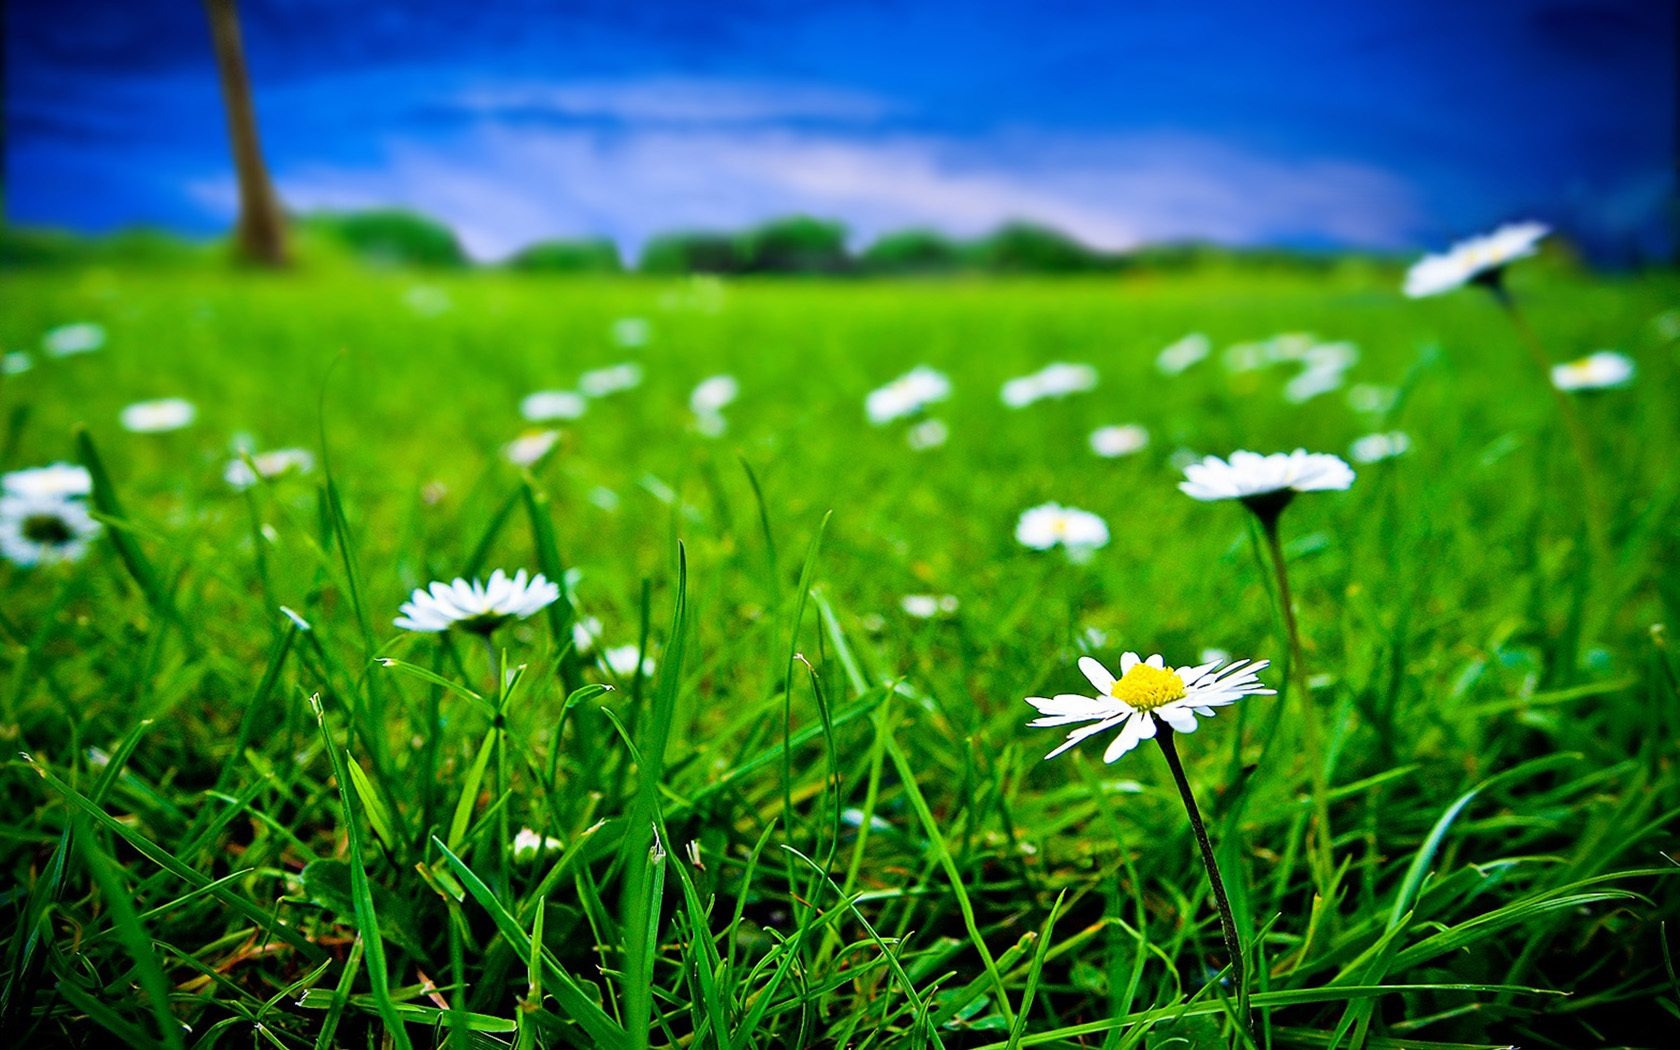 Wallpaper green grass and white flowers 1680x1050 hd picture image greengrasswhiteflower original resolution 1680x1050 download this wallpaper mightylinksfo